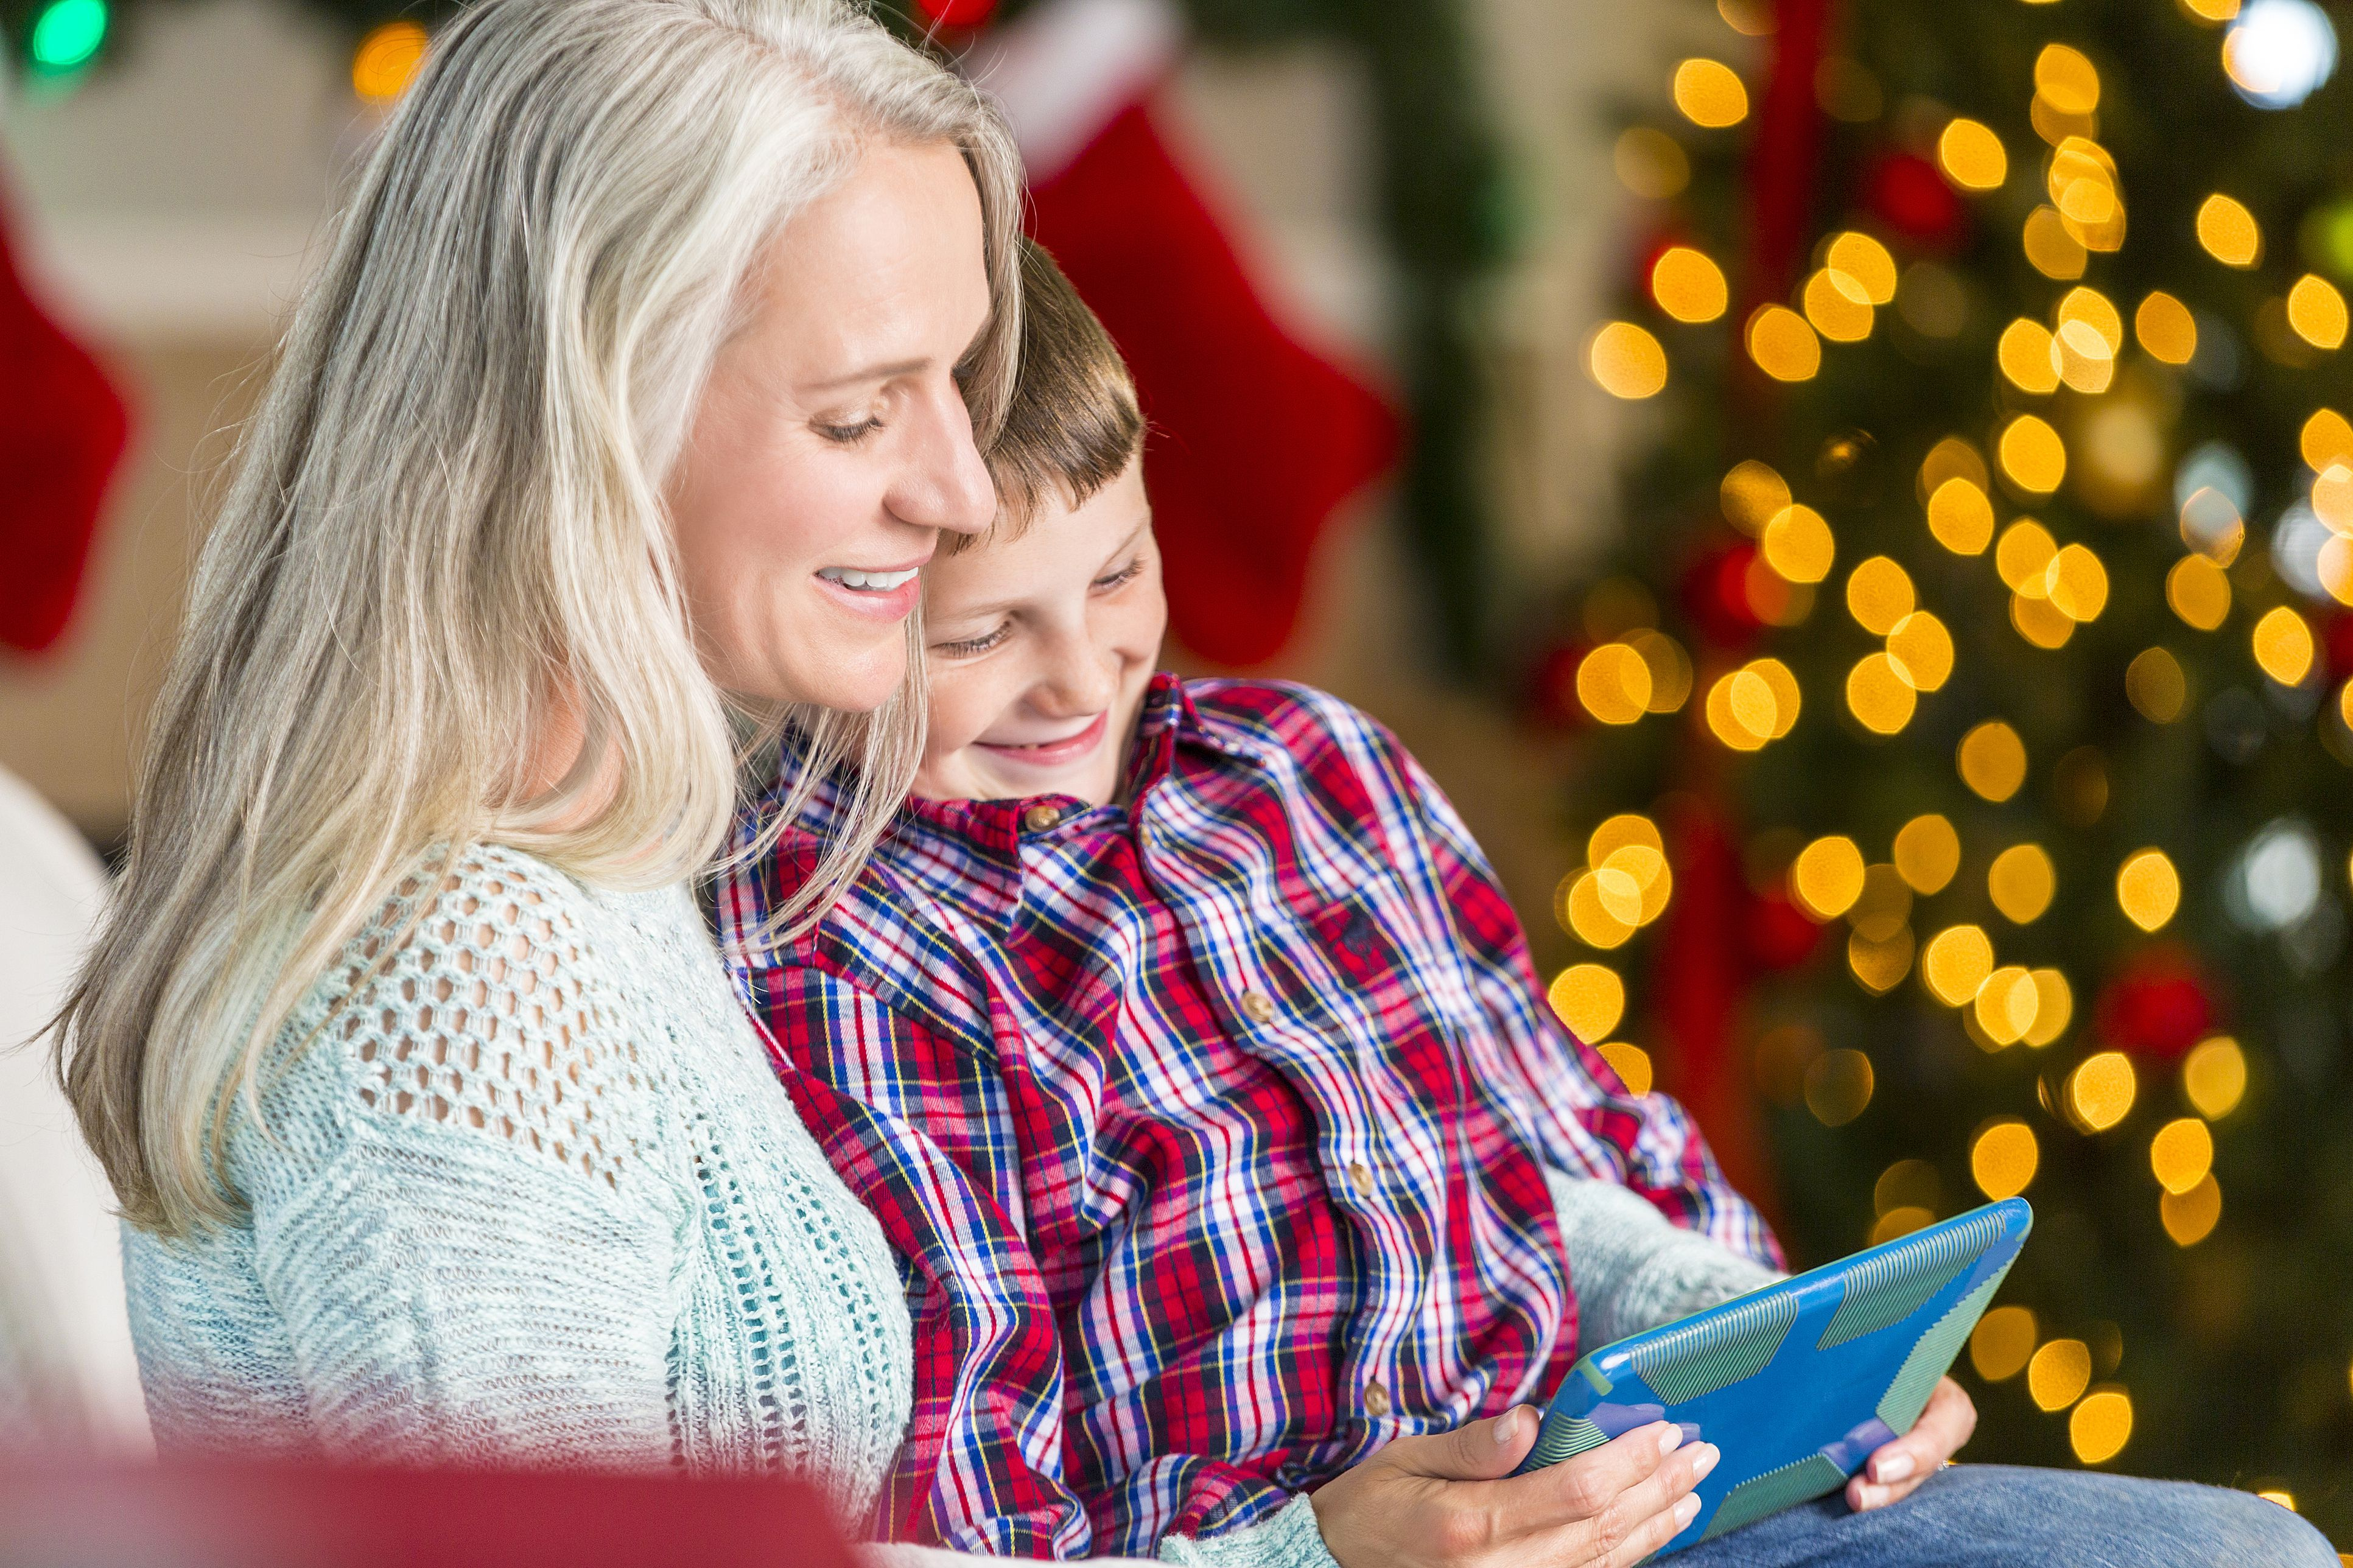 Grandmother reads story to grandson at Christmastime